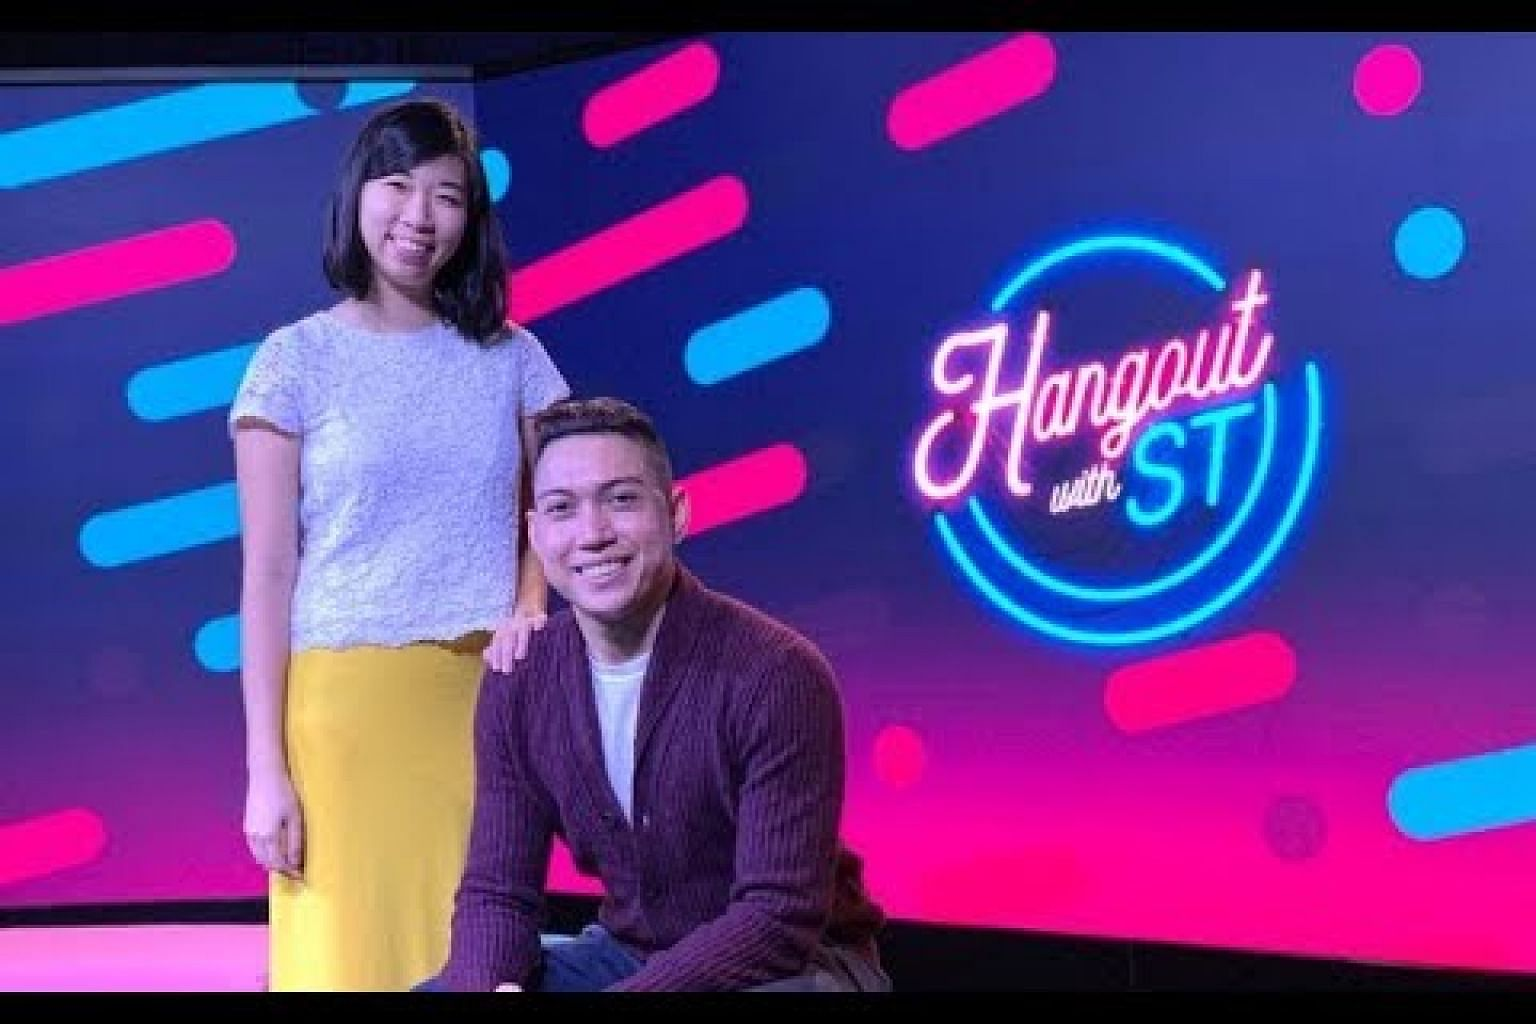 Hangout with ST: What makes you beautiful? | ChildAid 2019